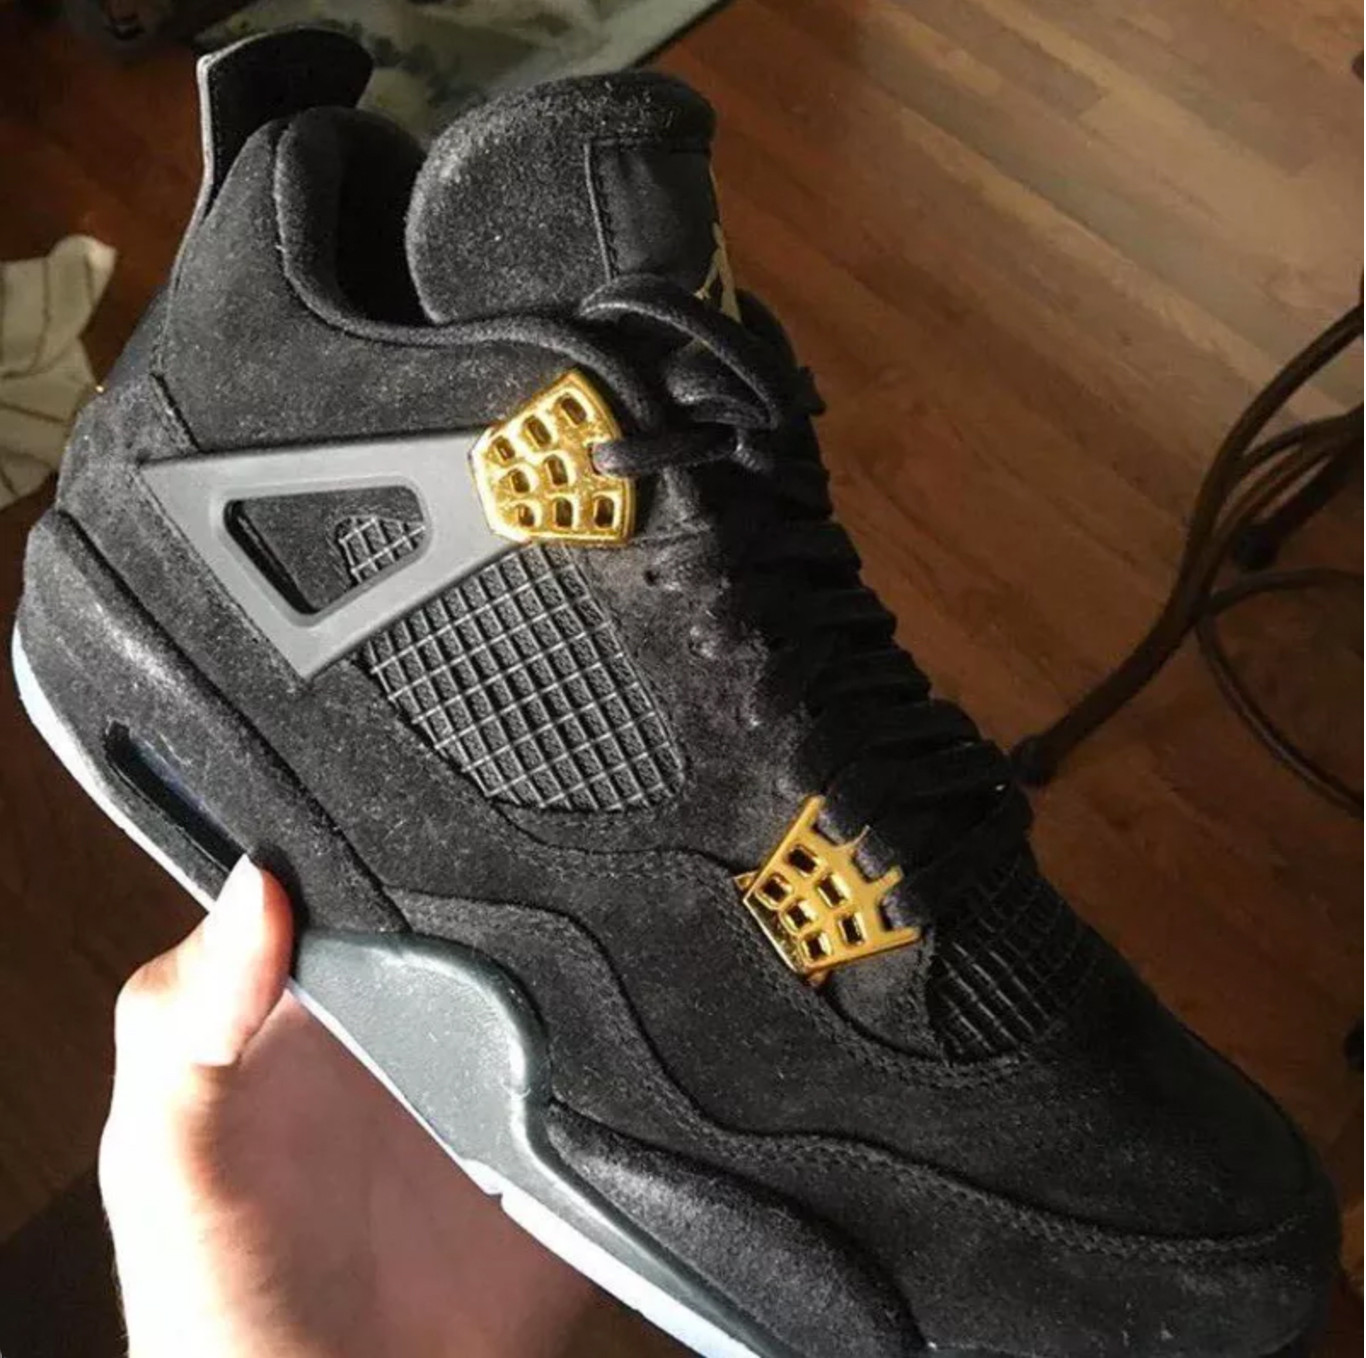 f1522adeef89 A KAWS x Air Jordan 4 Collaboration Is on Its Way Sneakers Brian Donnelly  Swoosh